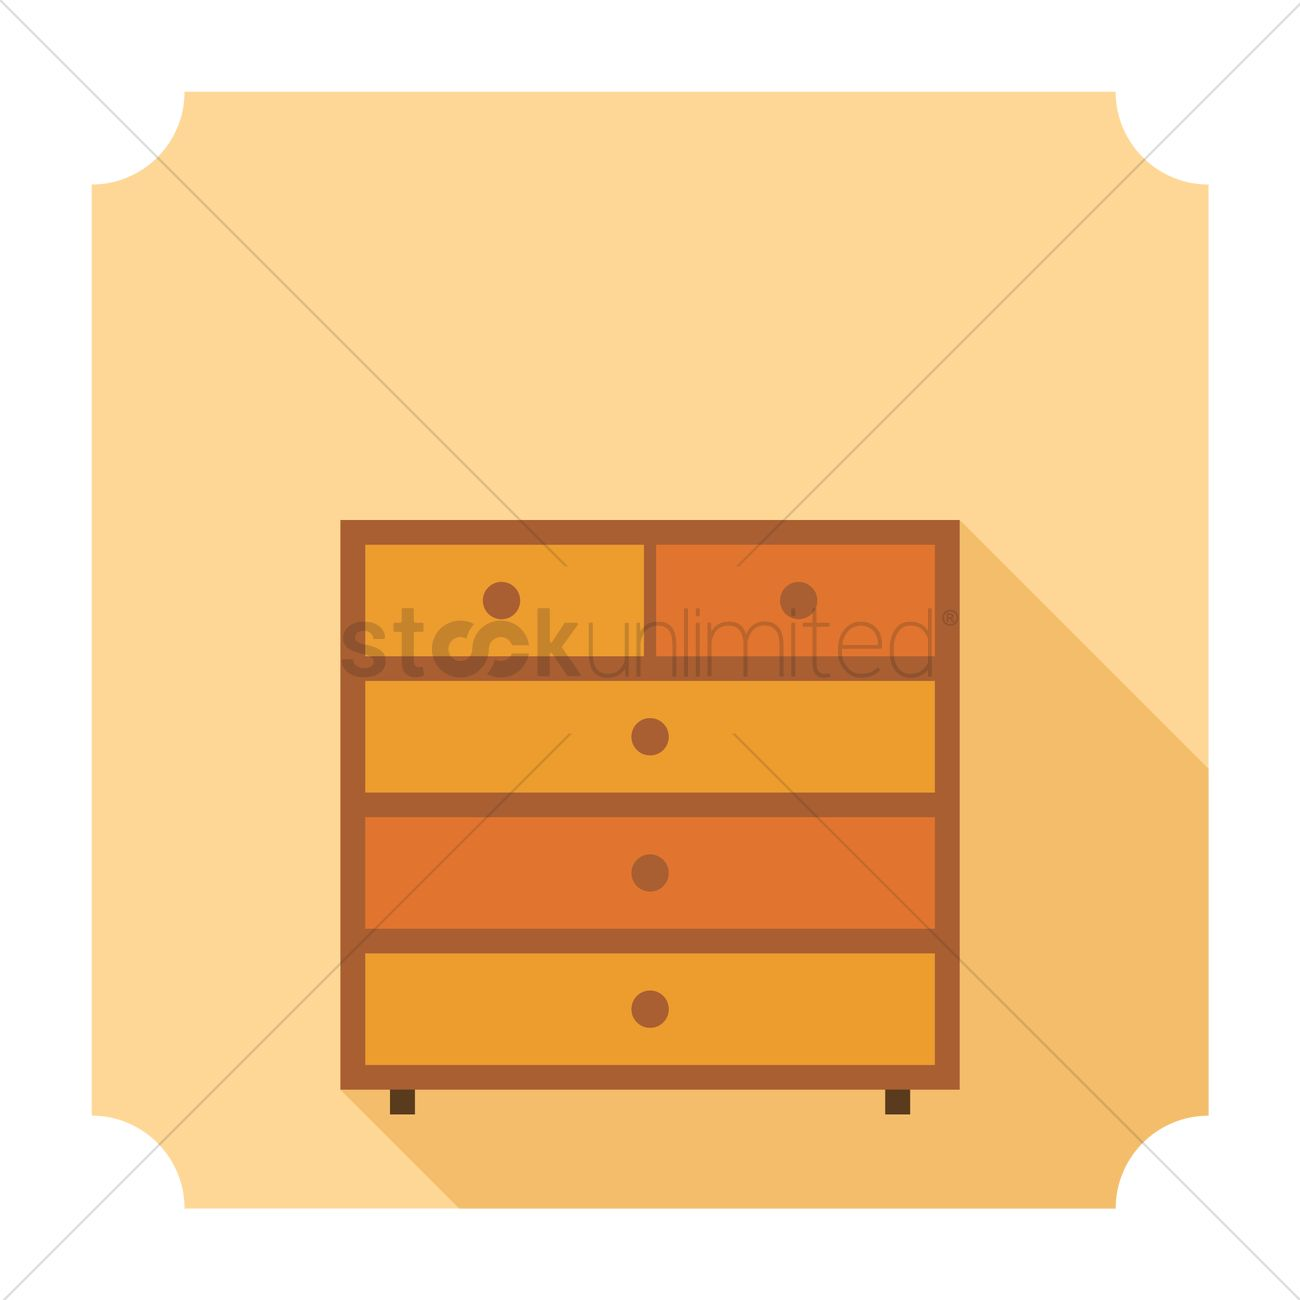 Bedside table clipart  Bedside table Vector Image - 1373935 | StockUnlimited